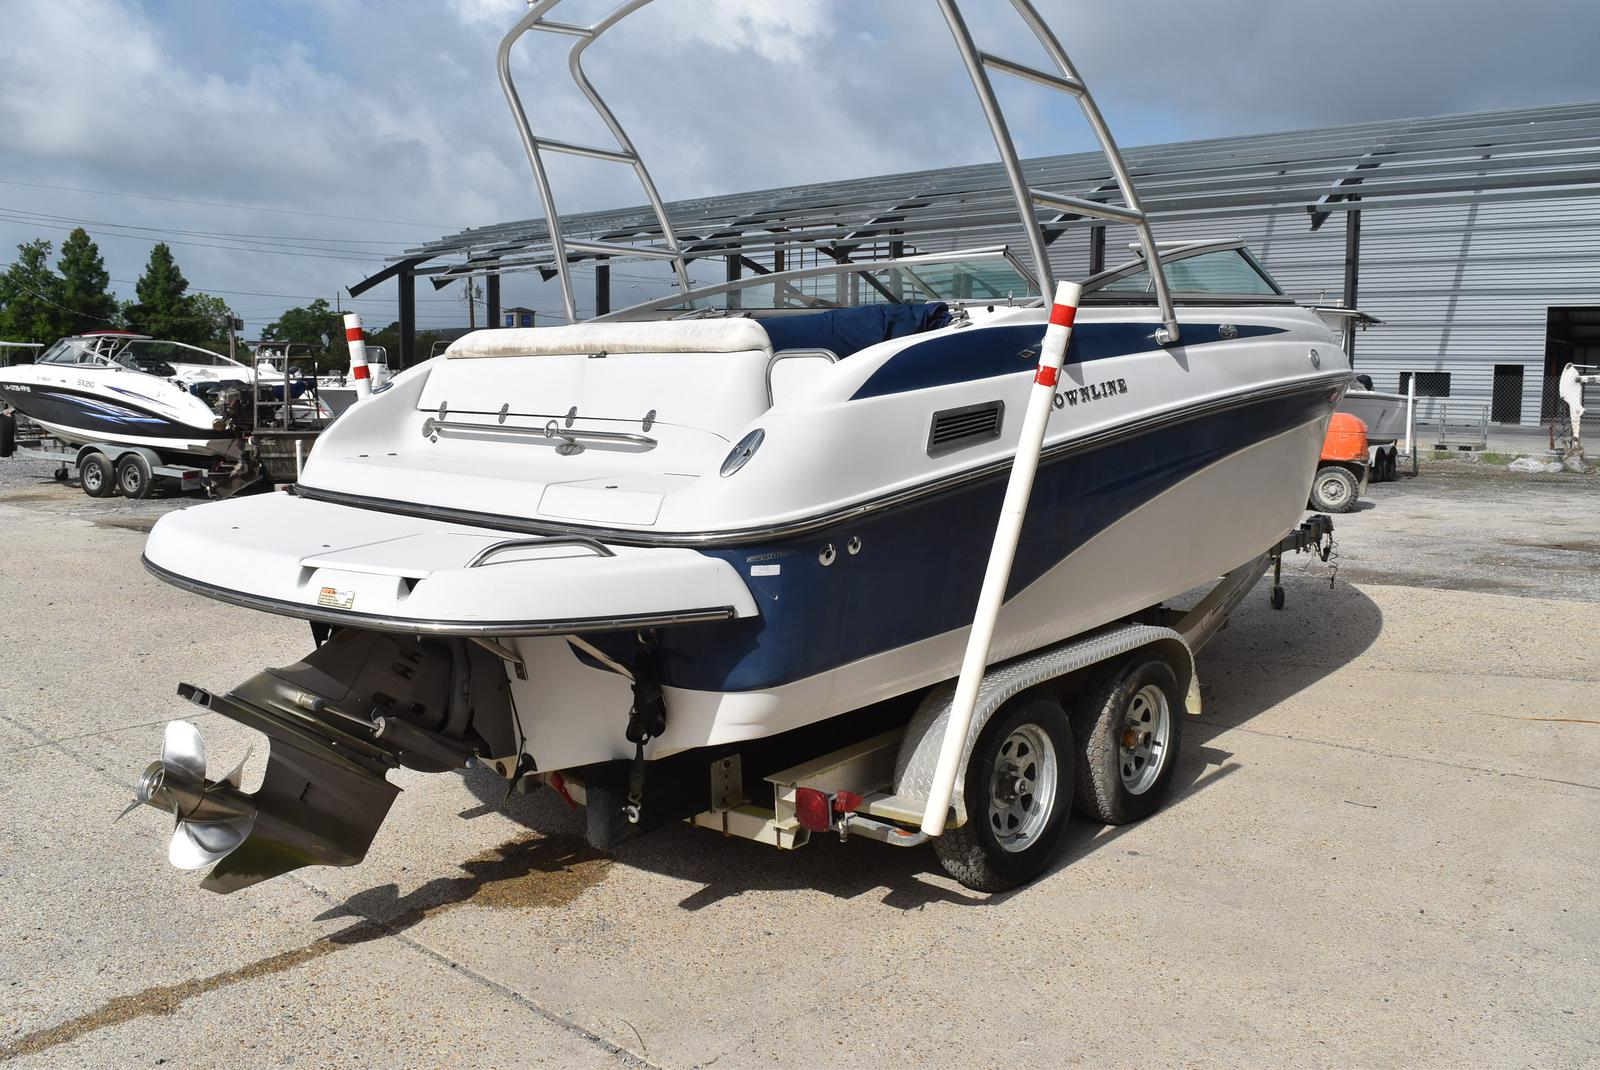 2003 Crownline boat for sale, model of the boat is 230 BR & Image # 4 of 16